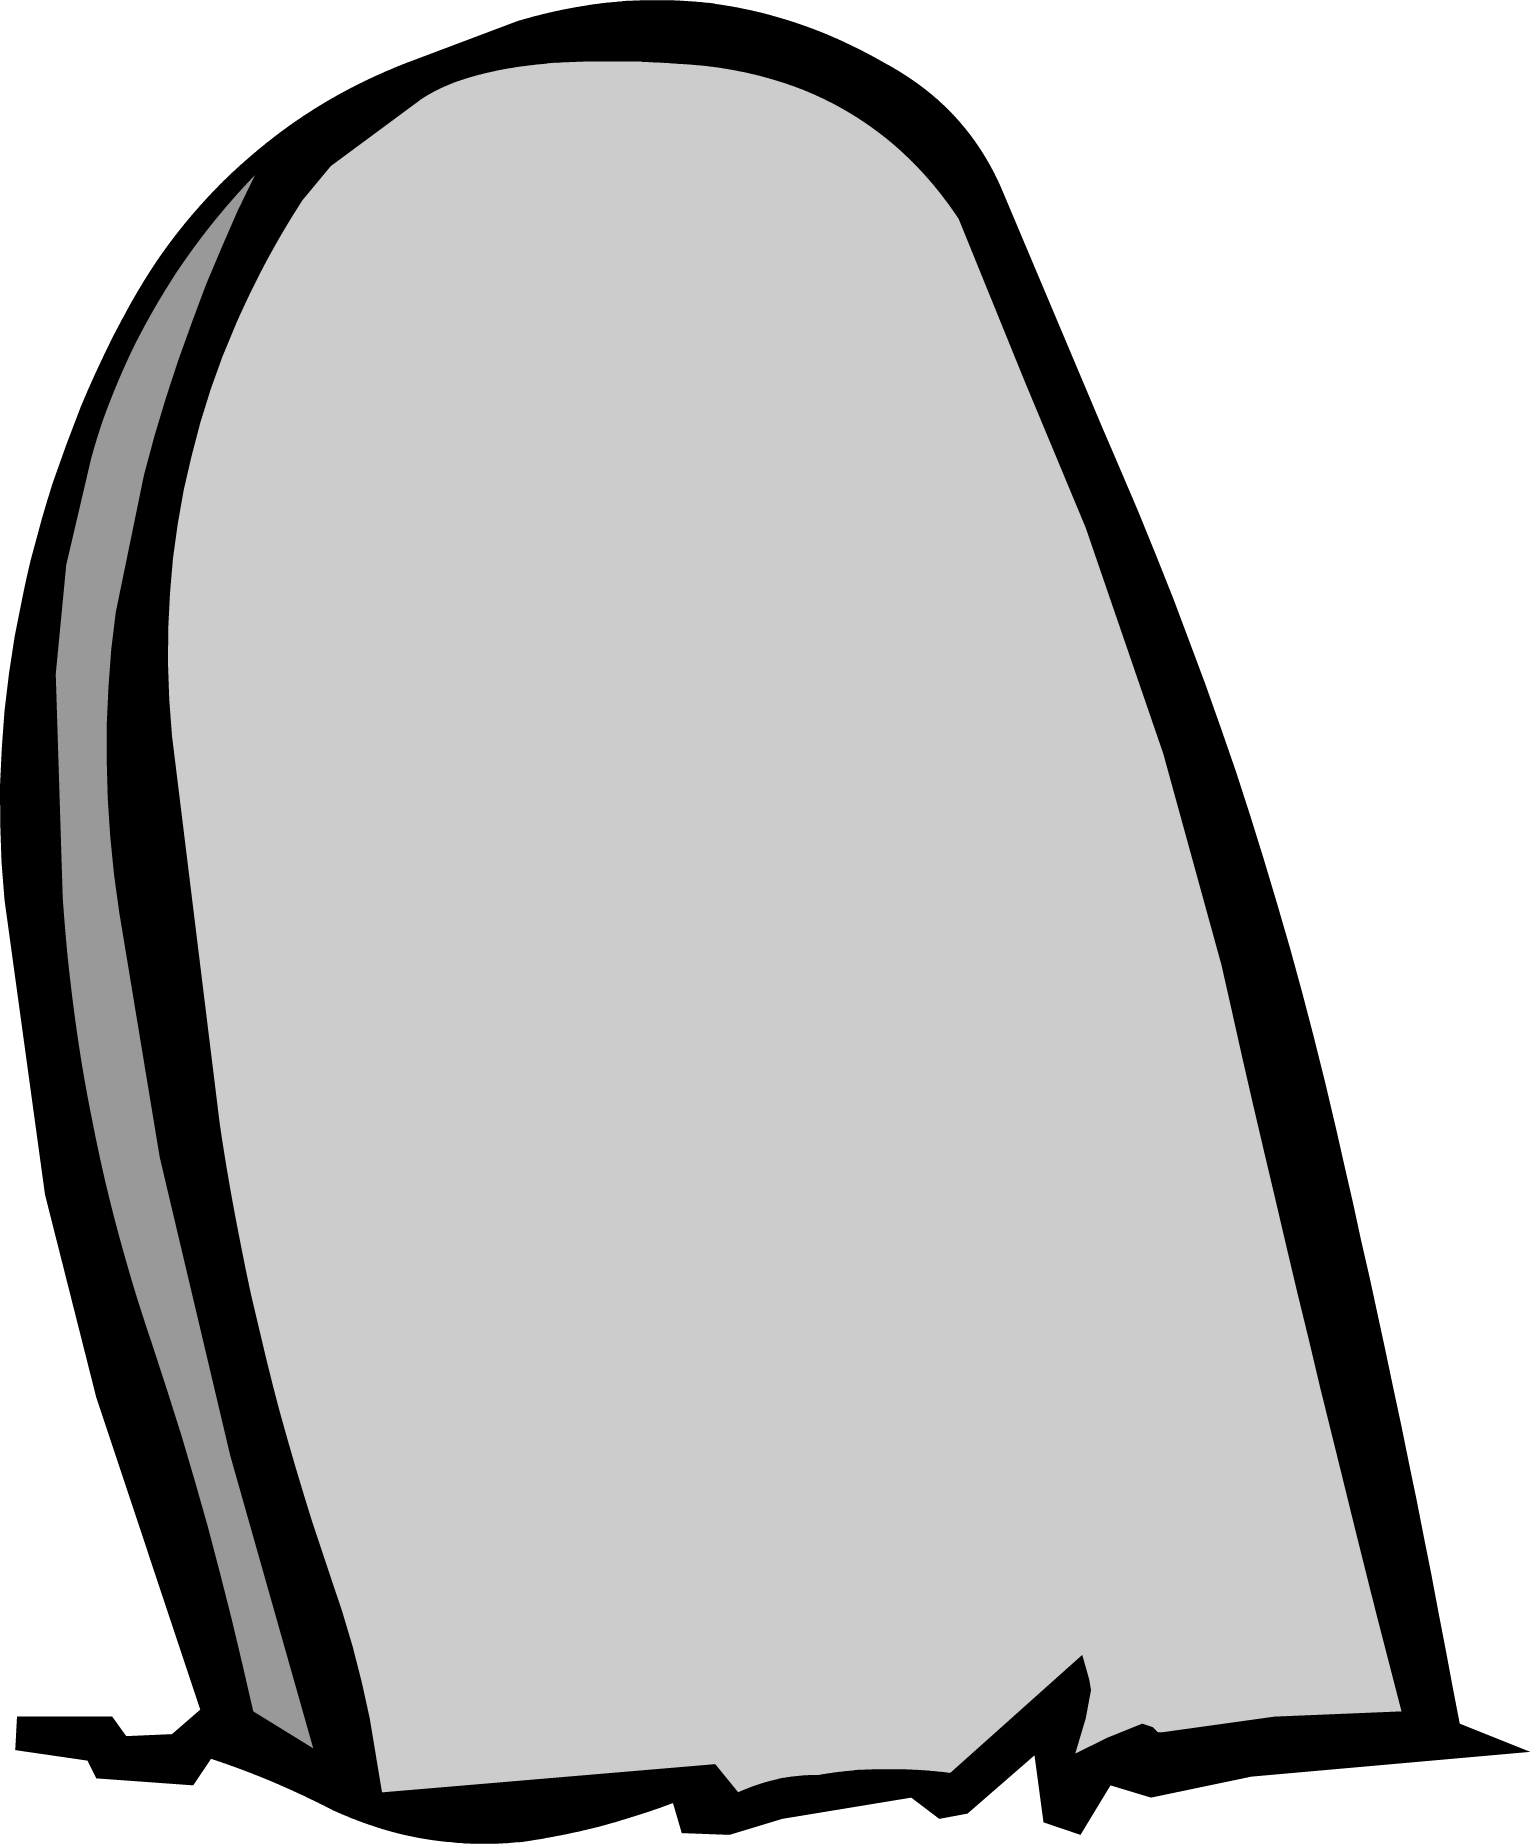 image black and white Gravestone PNG Image